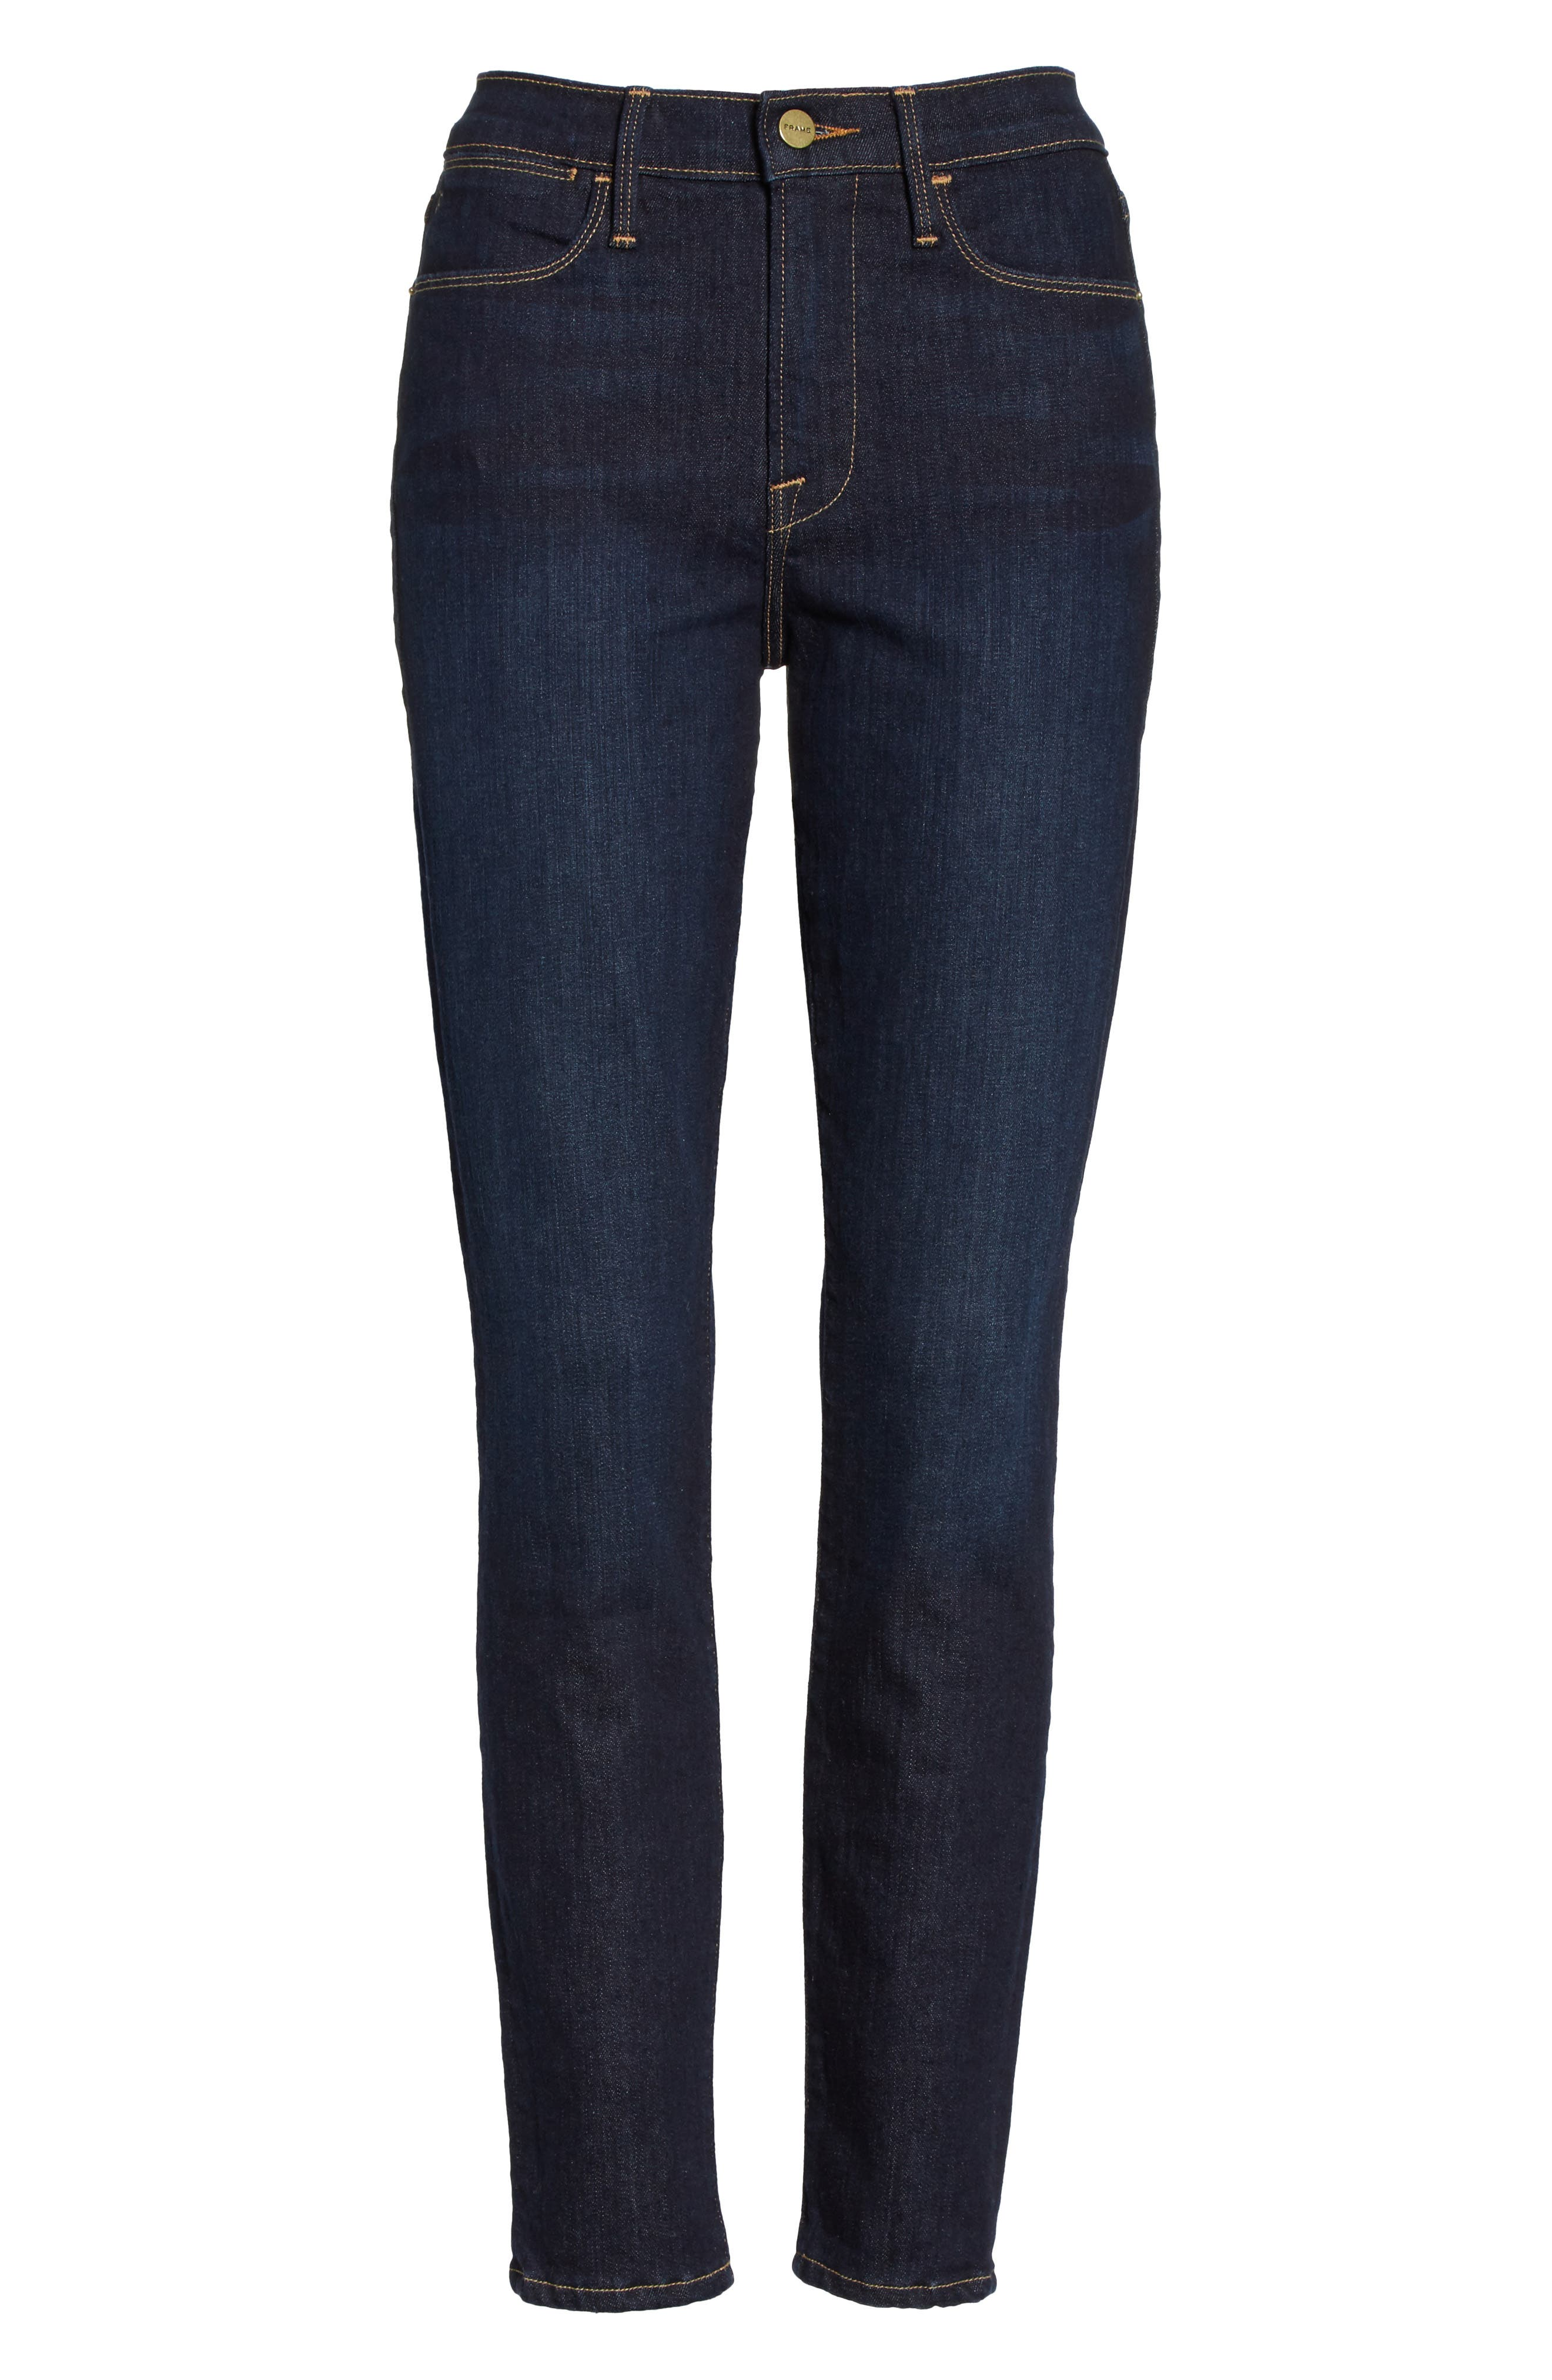 Le High Ankle Skinny Jeans,                             Alternate thumbnail 7, color,                             DAME